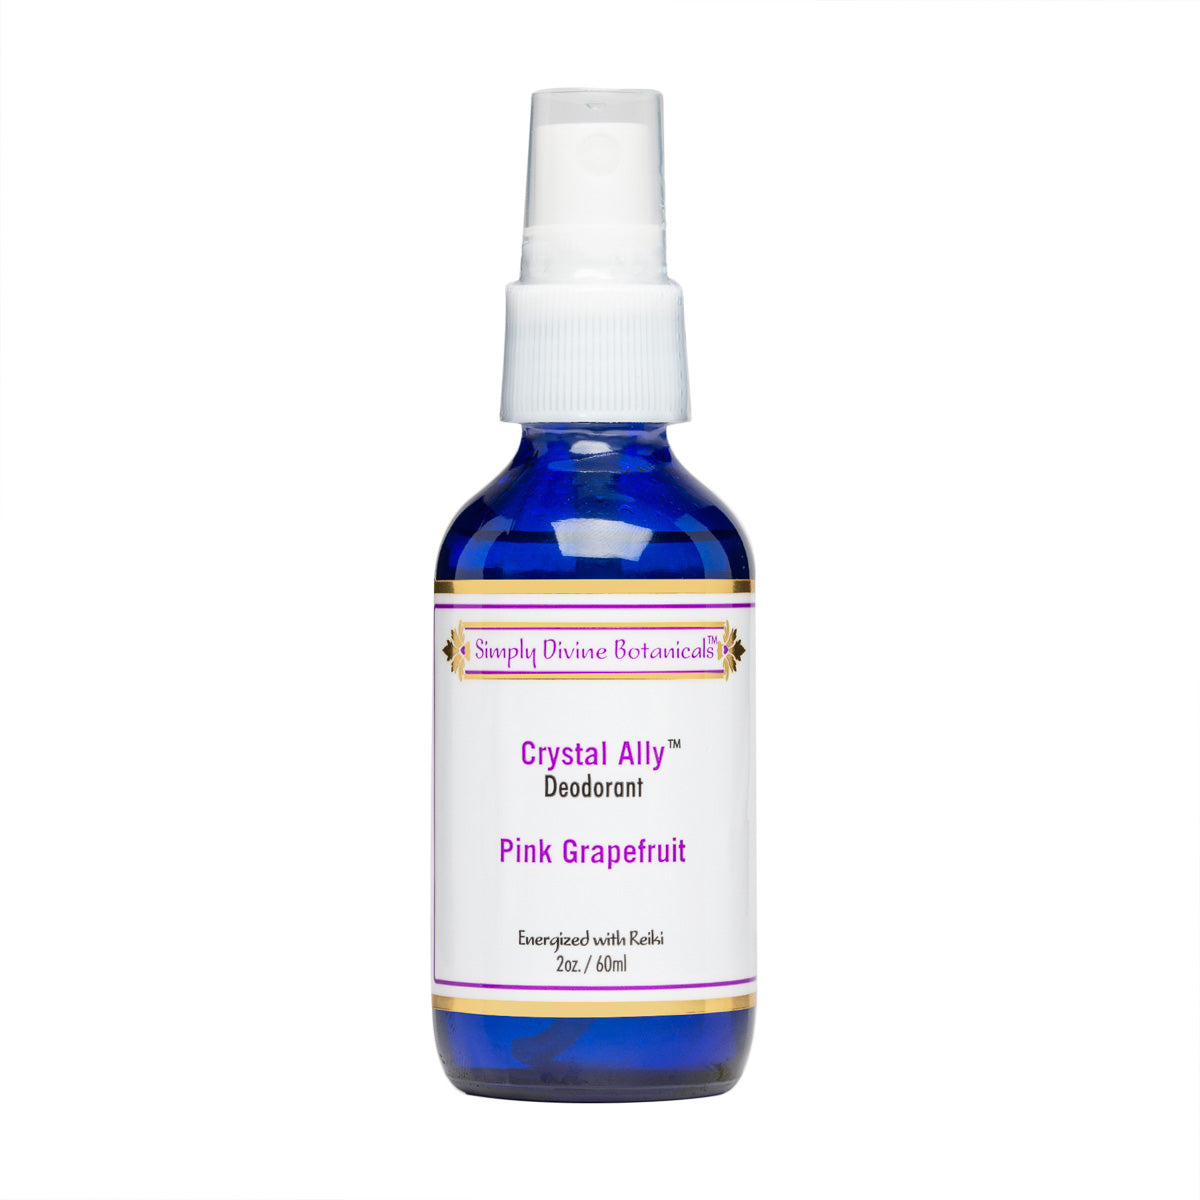 Crystal Ally - Keeping Abreast Of It (Deodorant with a purpose!) - (2oz) - Simply Divine Botanicals